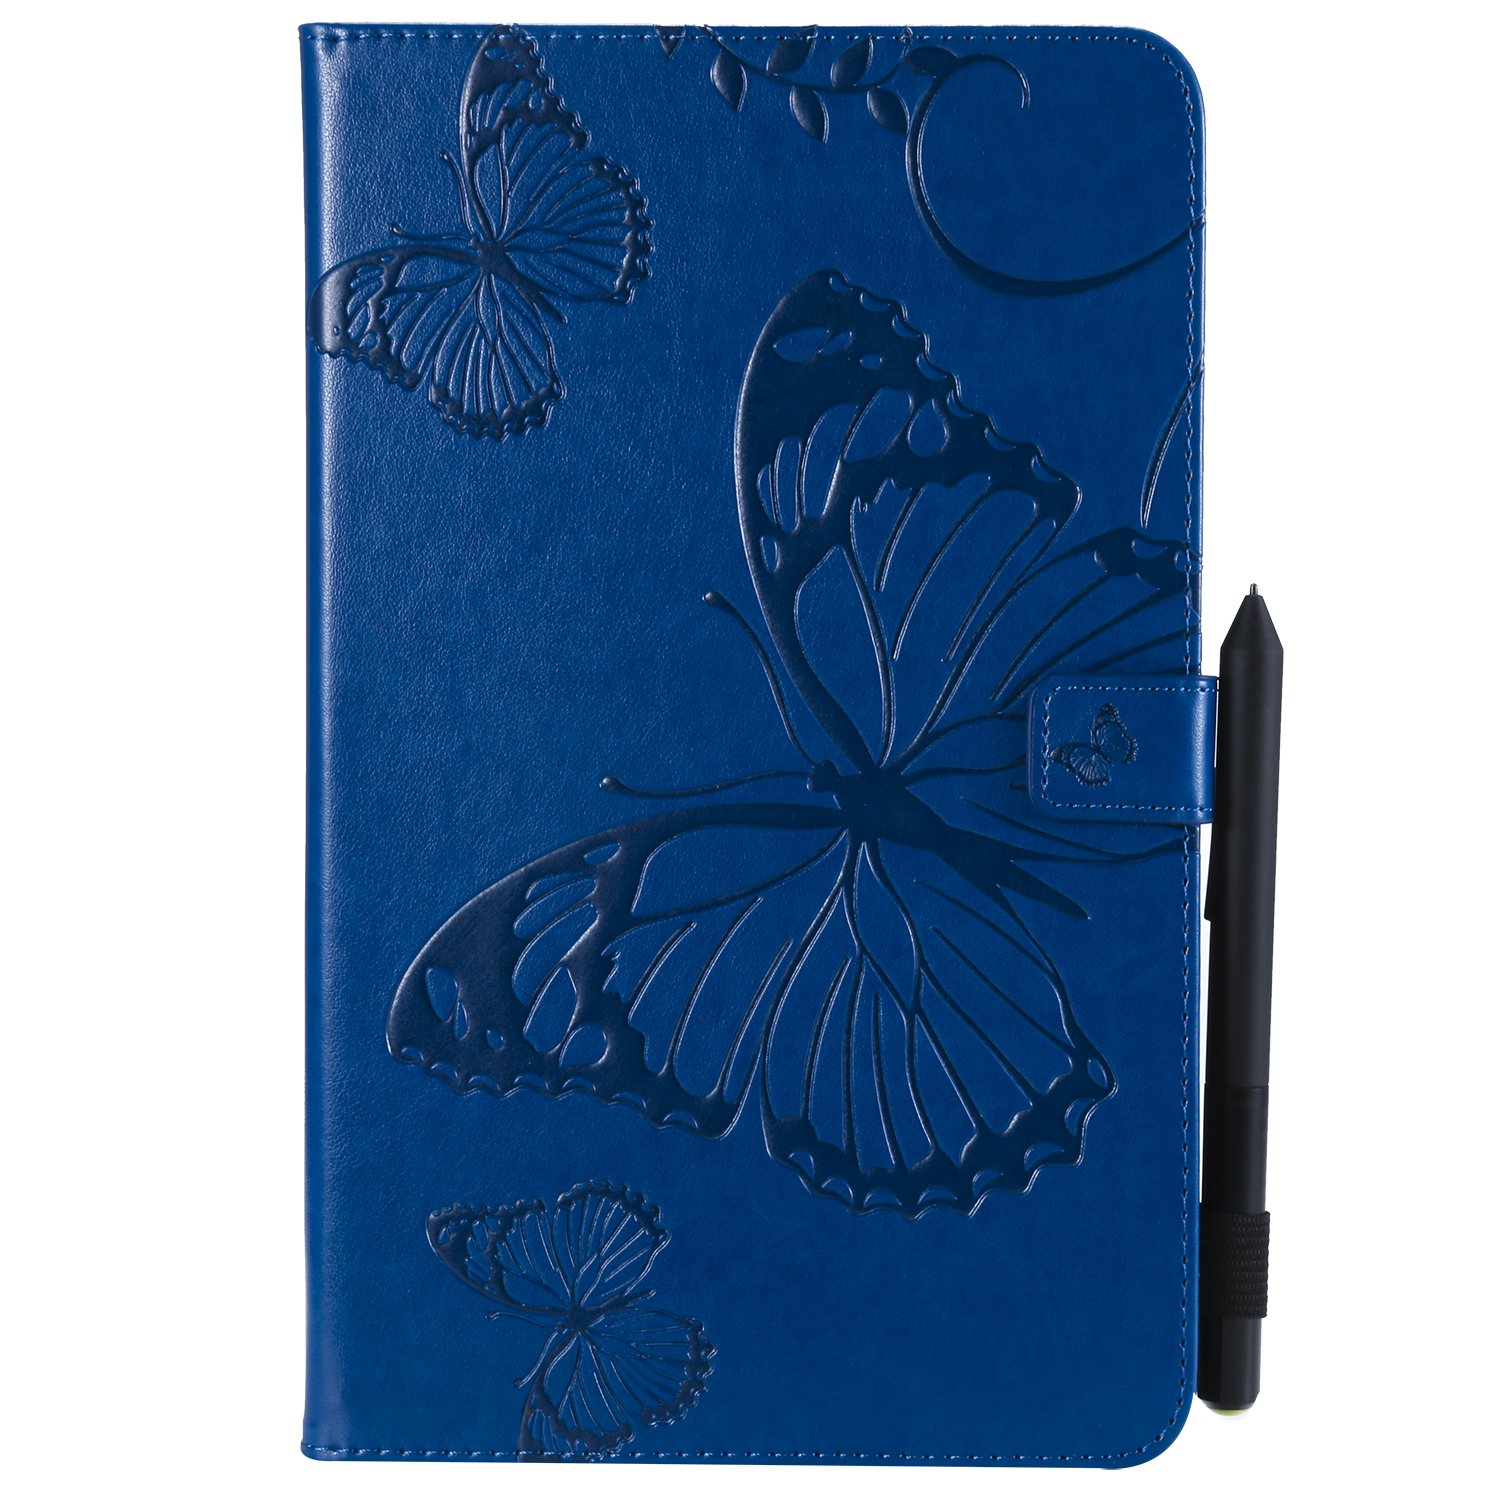 Bear Village Galaxy Tab a 10.1 Inch Case, Butterfly Embossed Anti Scratch Shell with Adjust Stand, Smart Stand PU Leather Case for Samsung Galaxy Tab a 10.1 Inch, Blue